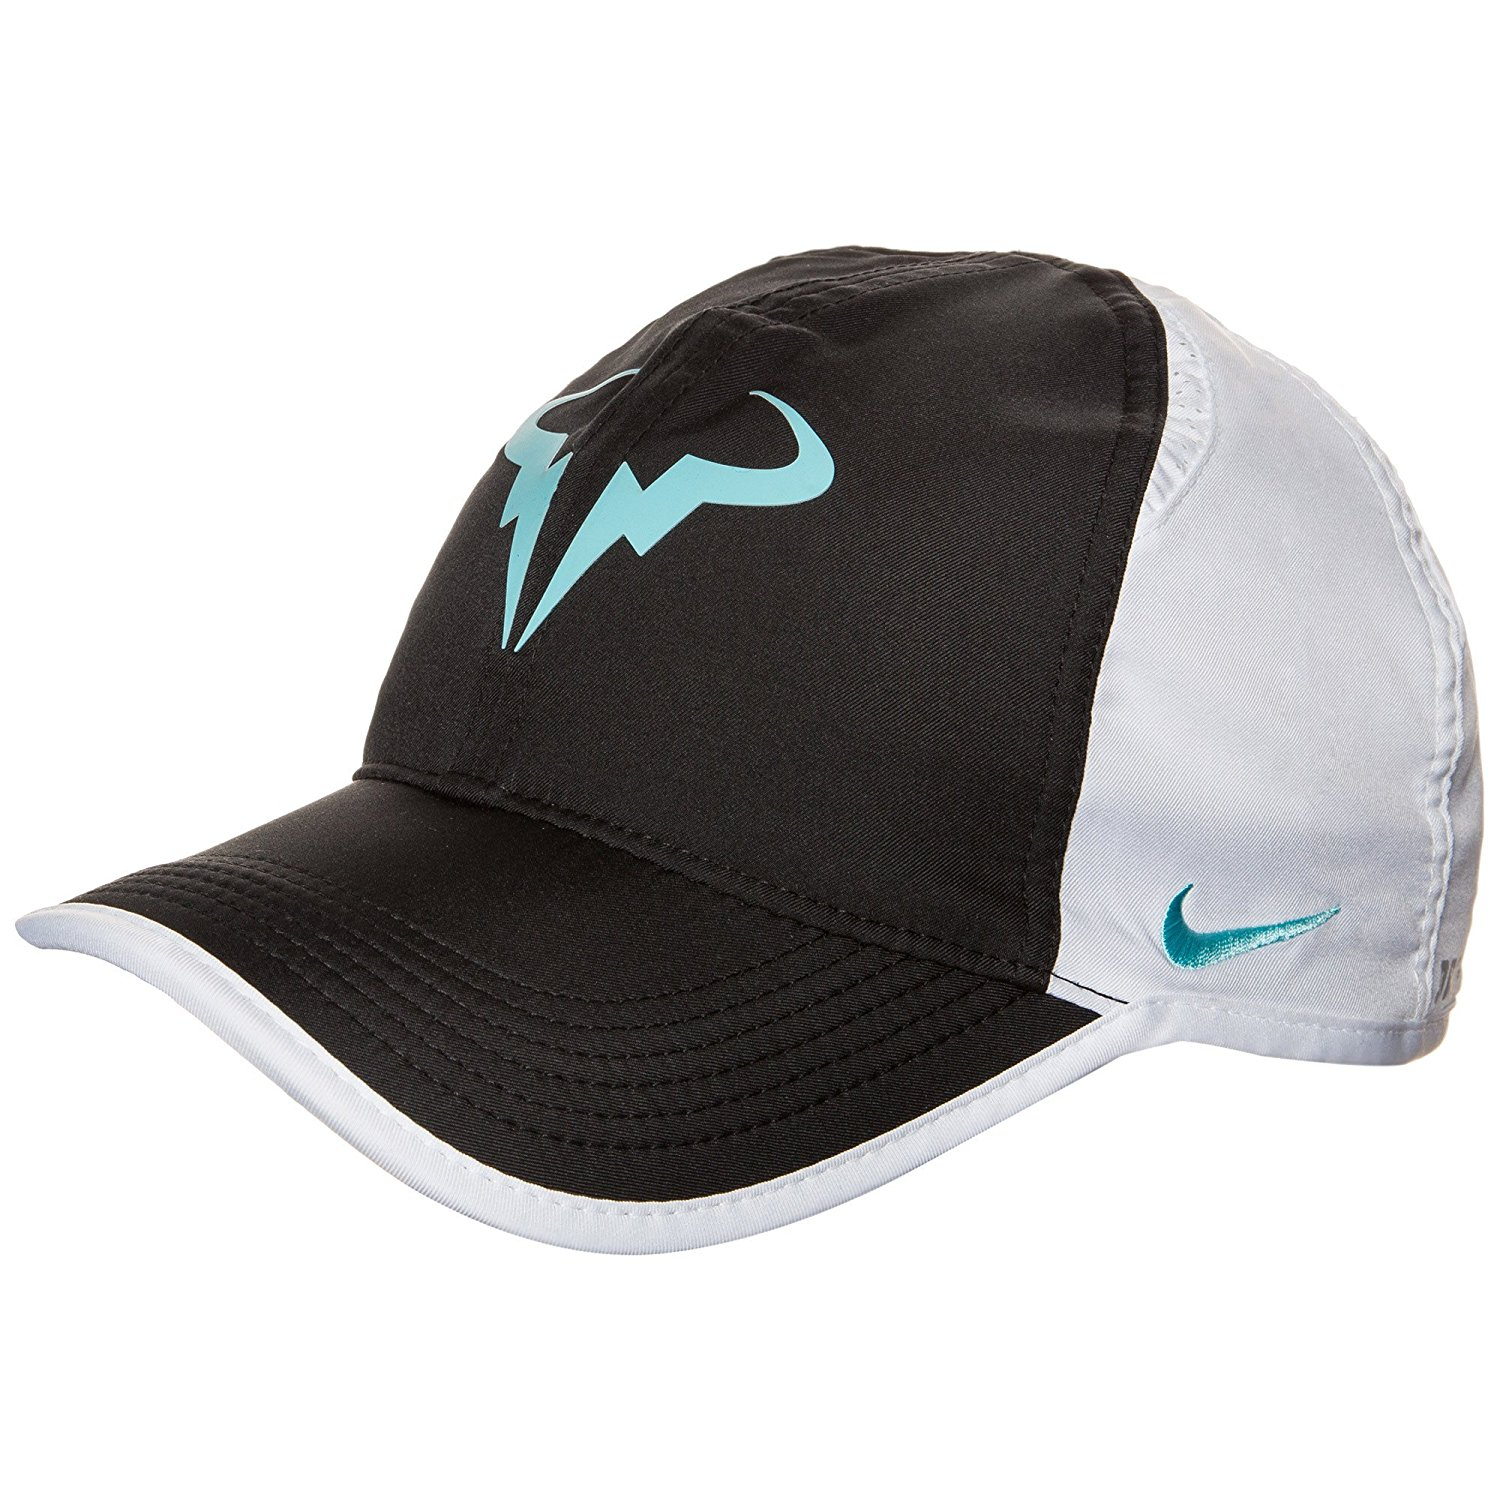 c6afeaed35d Get Quotations · Nike Rafa Featherlight White   Black Cap